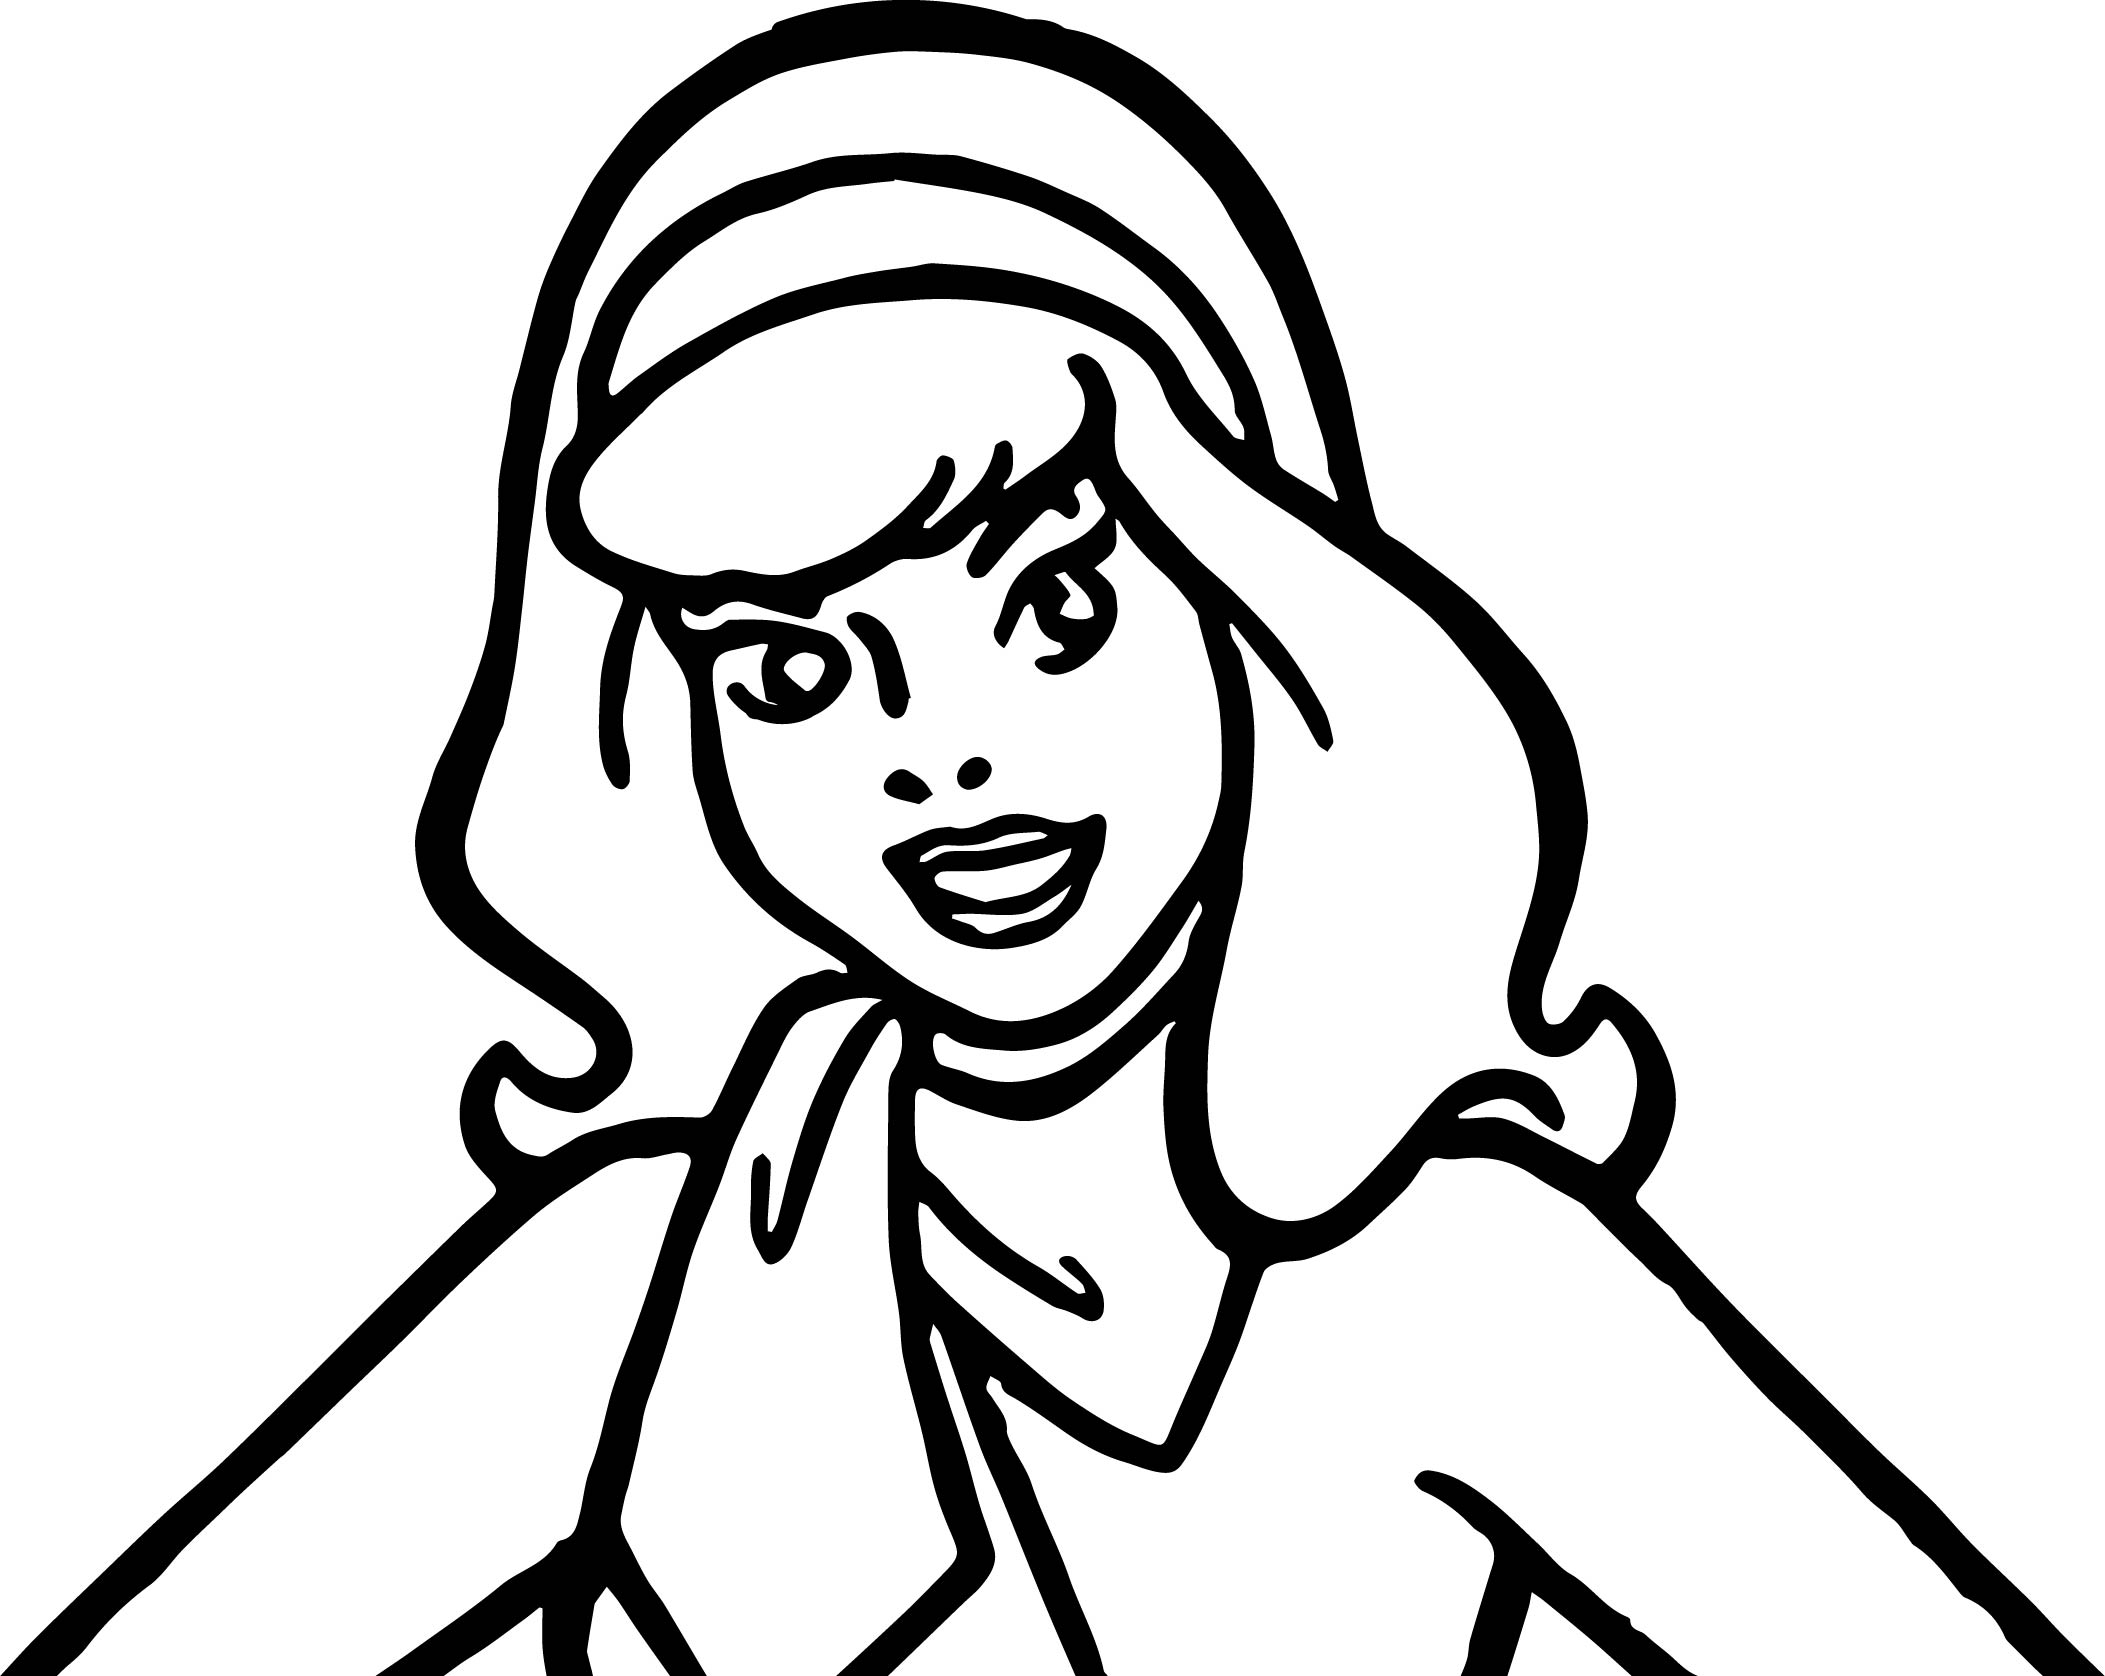 daphne scooby doo make up coloring page